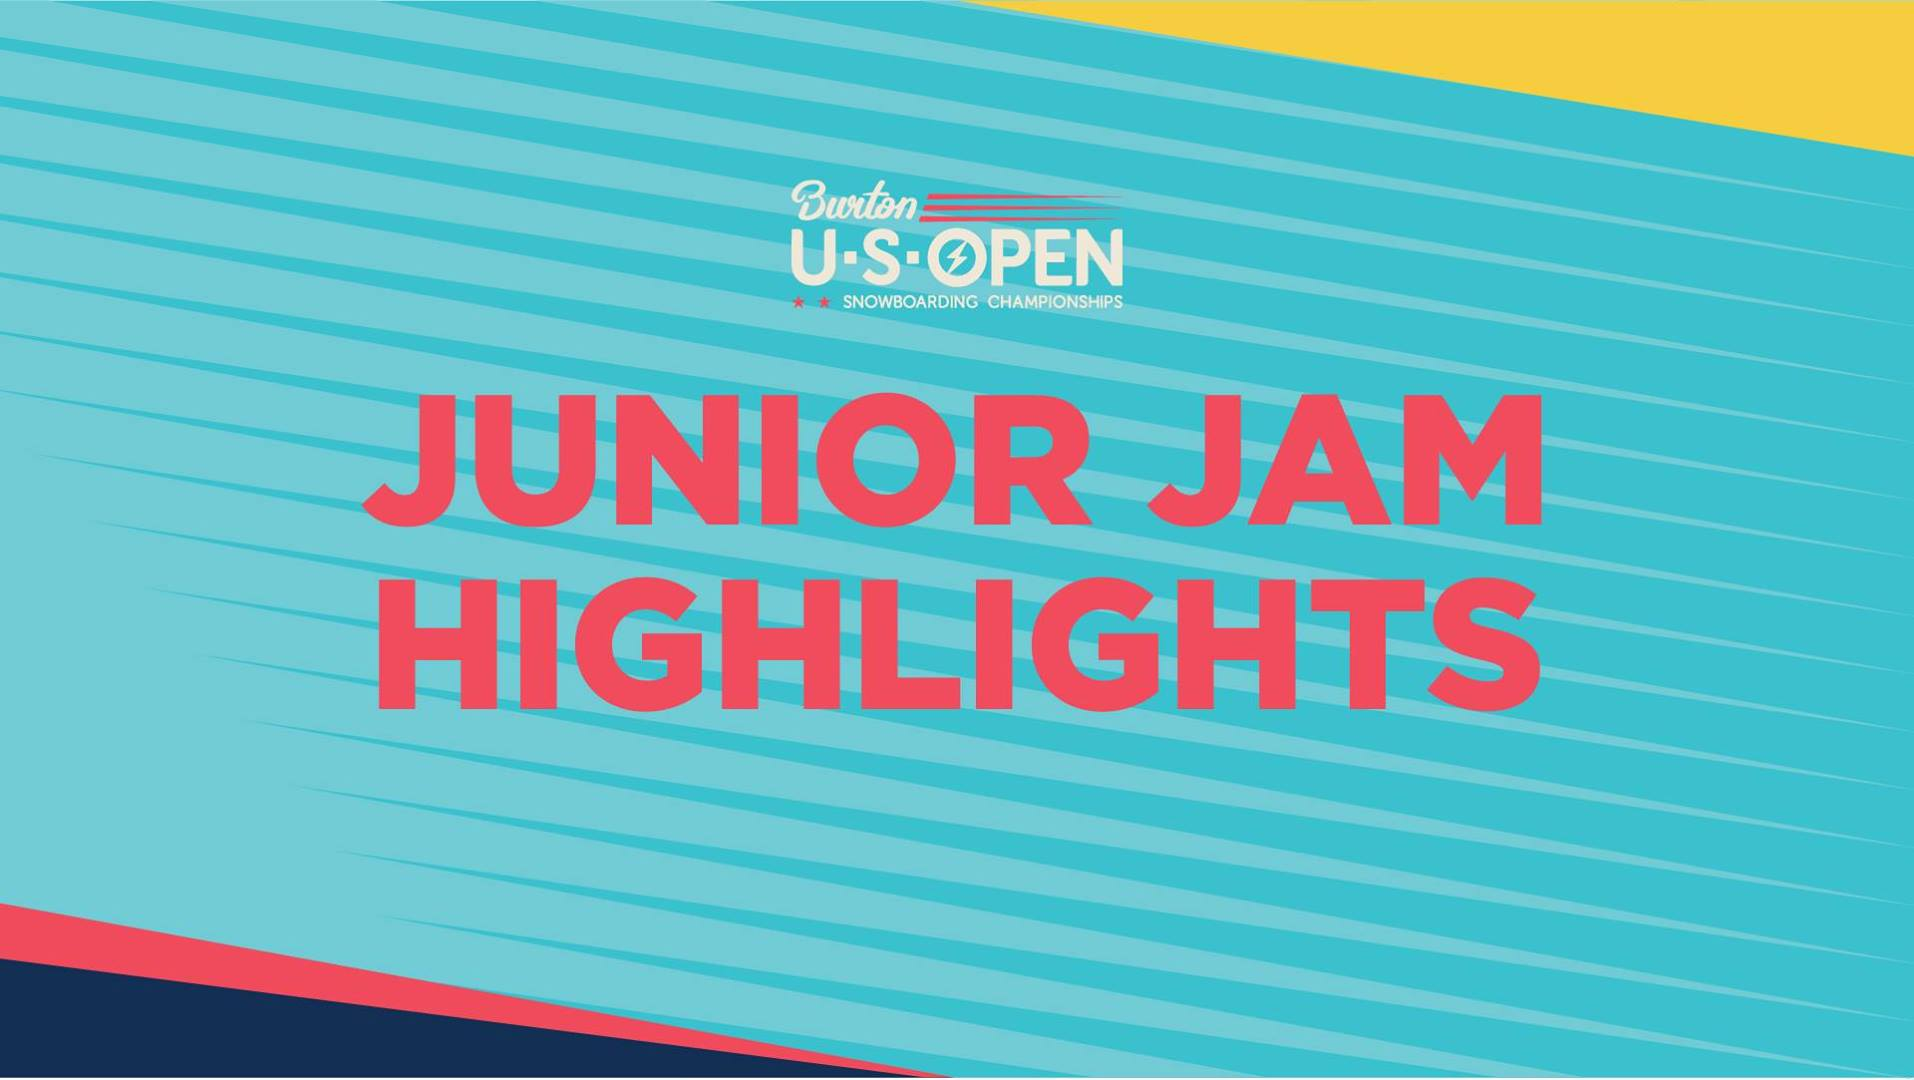 2019 Burton U·S·Open Junior Jam Halfpipe Presented by Clif Bar - Highlights